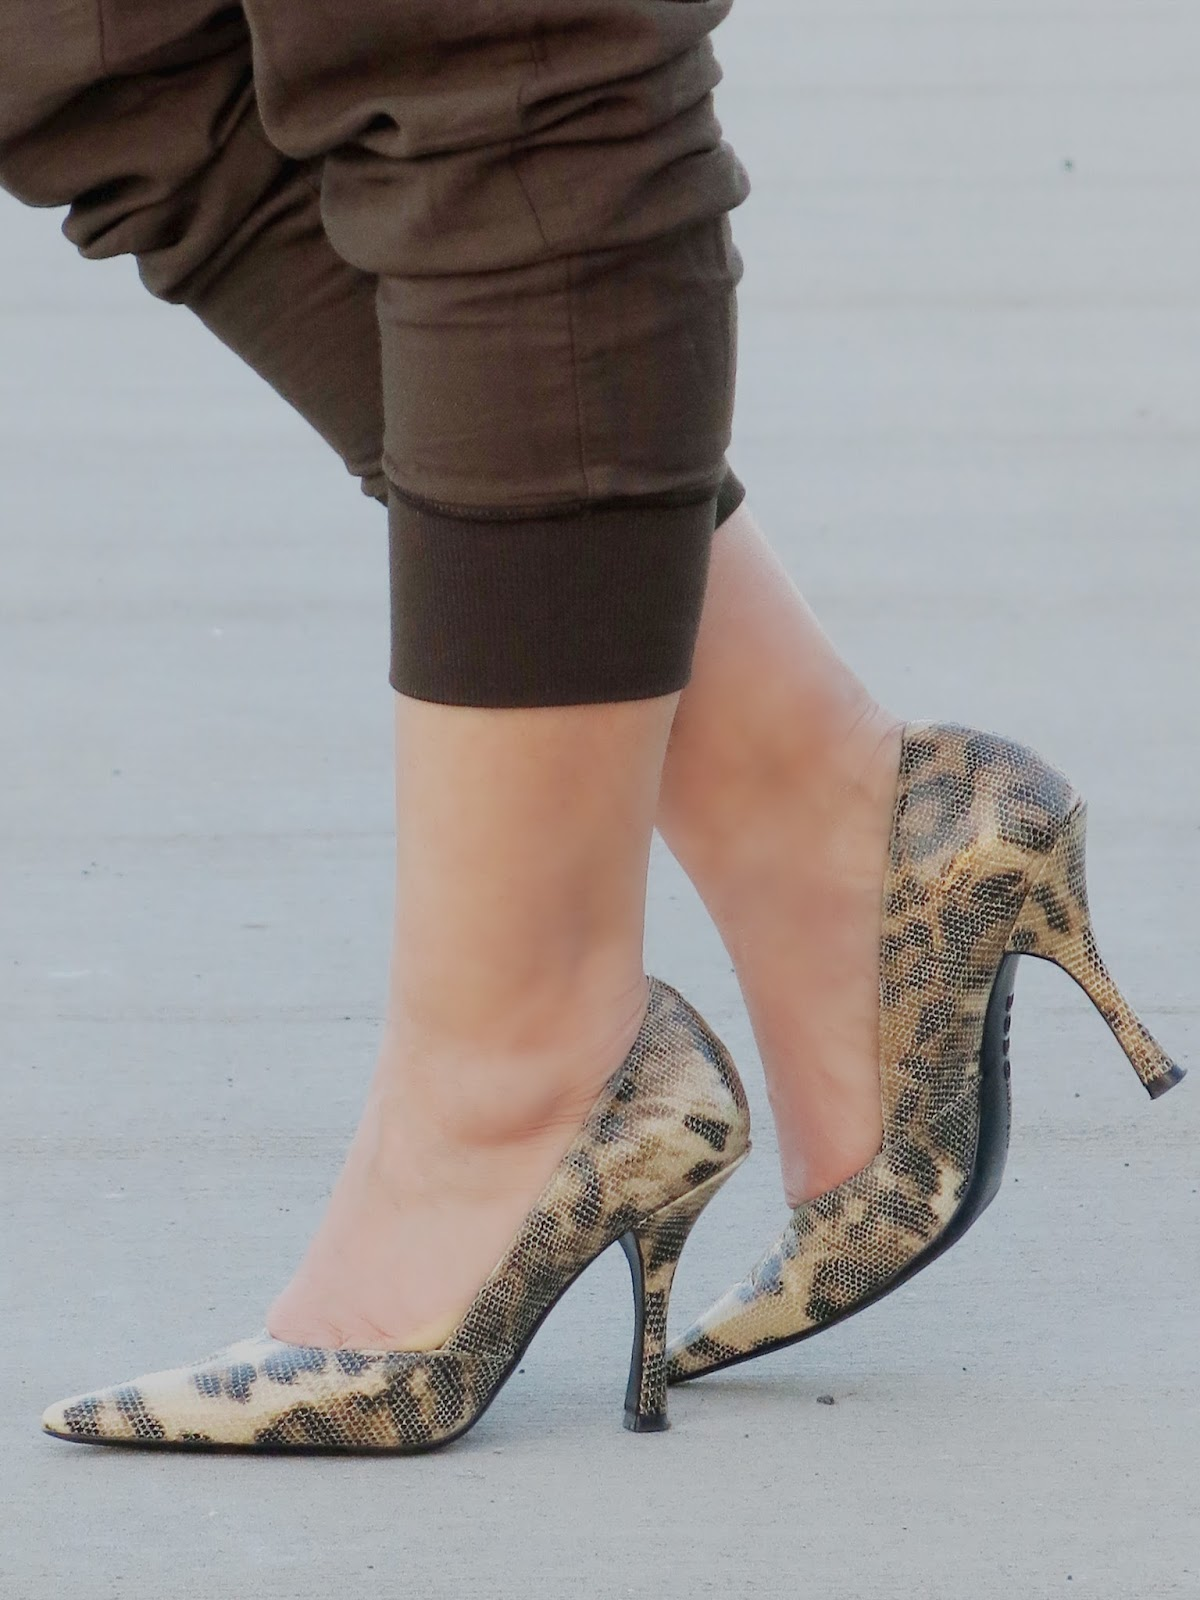 cargo pants and reptile-print pumps